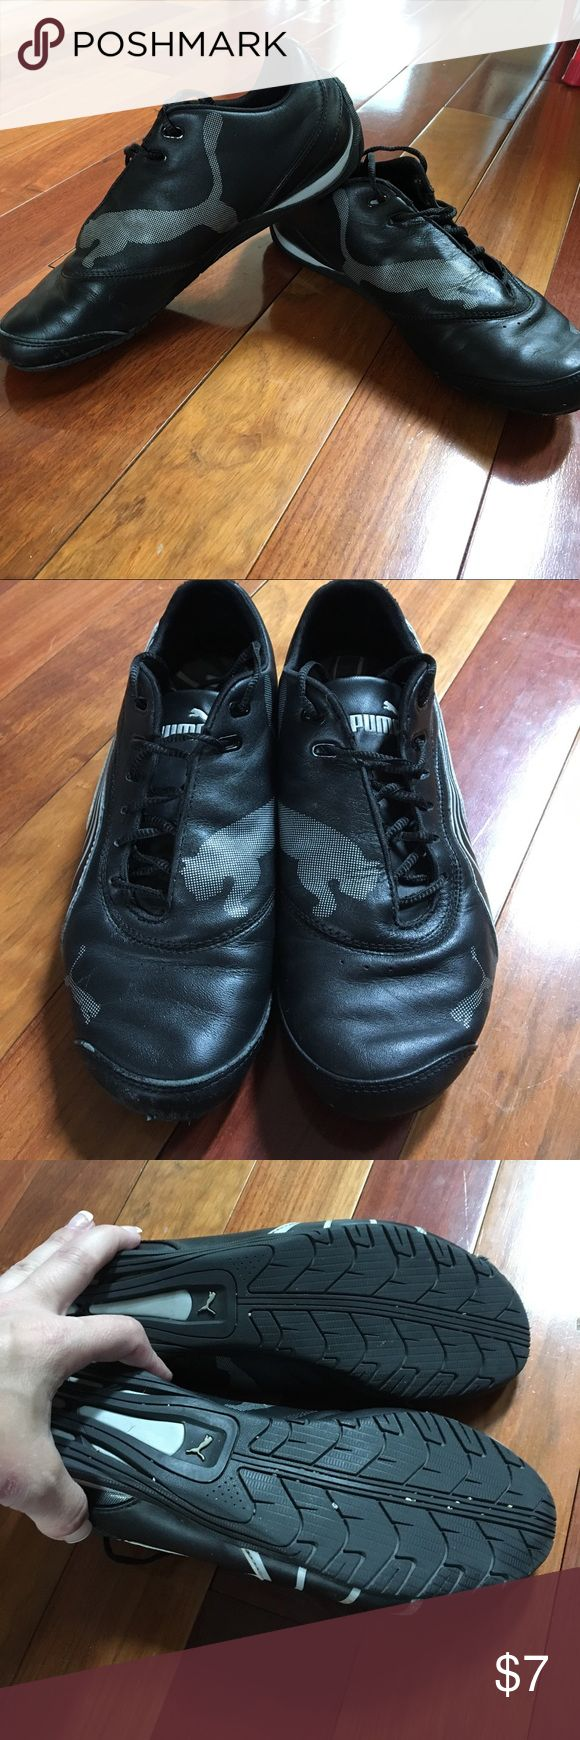 PUMA Black Tennis Shoes! Size 7, PUMA black tennis shoes with signature logo and striping in silver. Good used condition with wear on left front (see picture). Price reflects this. Bundle and save! Offers welcomed 👍 Puma Shoes Athletic Shoes